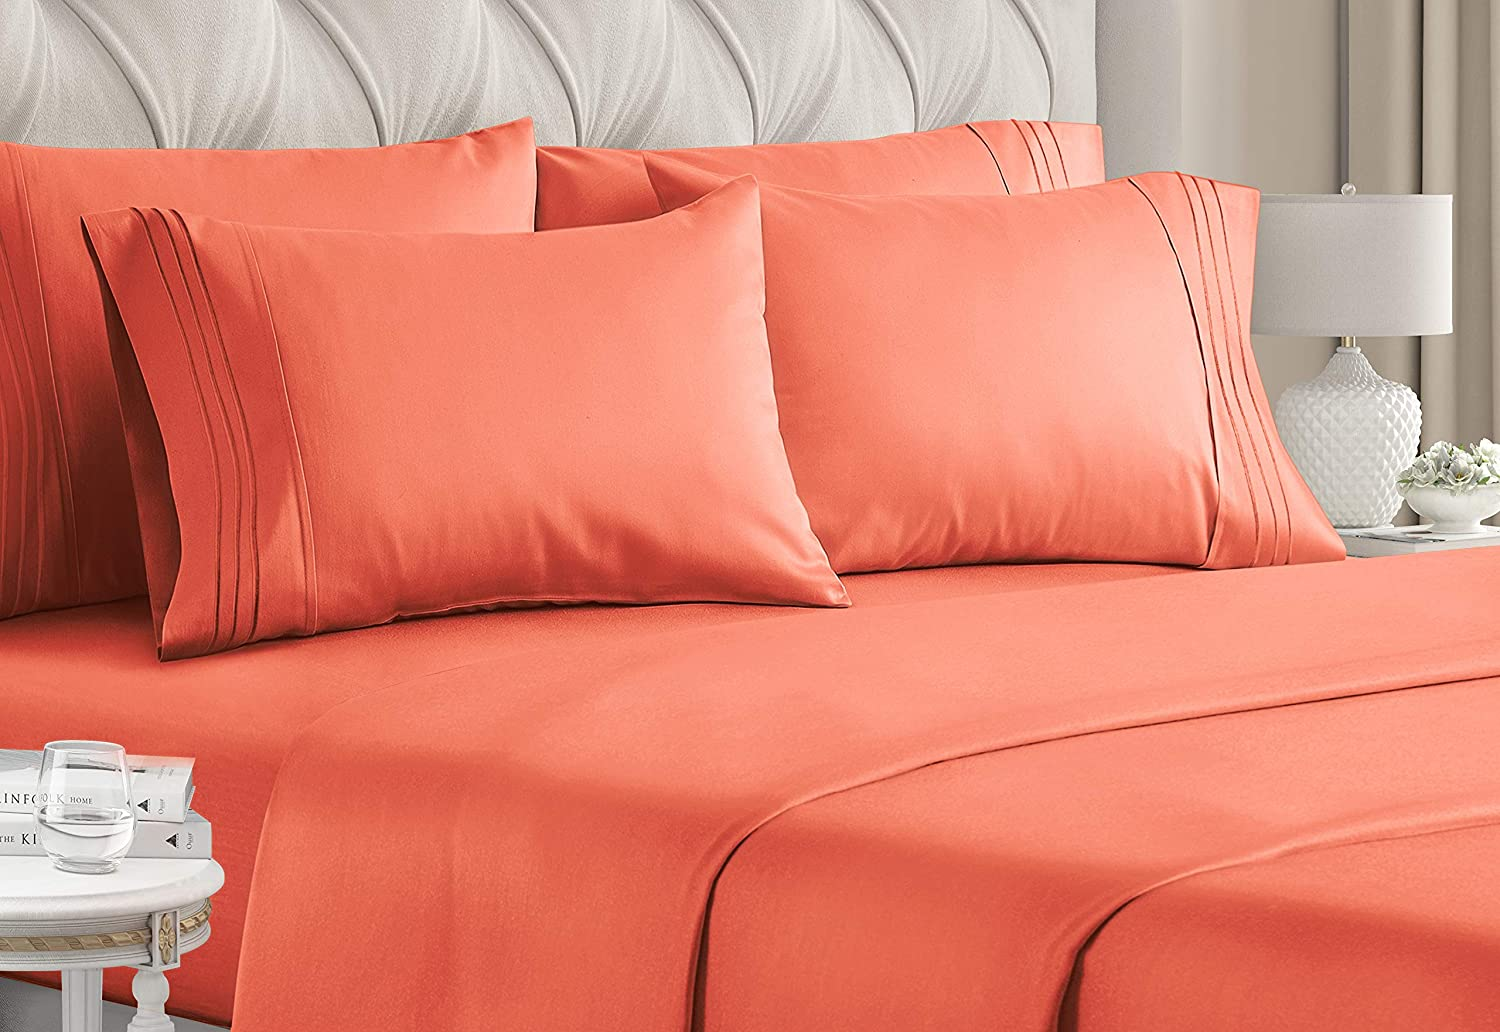 California King Size Sheet Set - 6 Piece Set - Hotel Luxury Bed Sheets - Extra Soft - Deep Pockets - Easy Fit - Breathable & Cooling - Wrinkle Free - Comfy - Coral Bed Sheets - Cali Kings Sheets